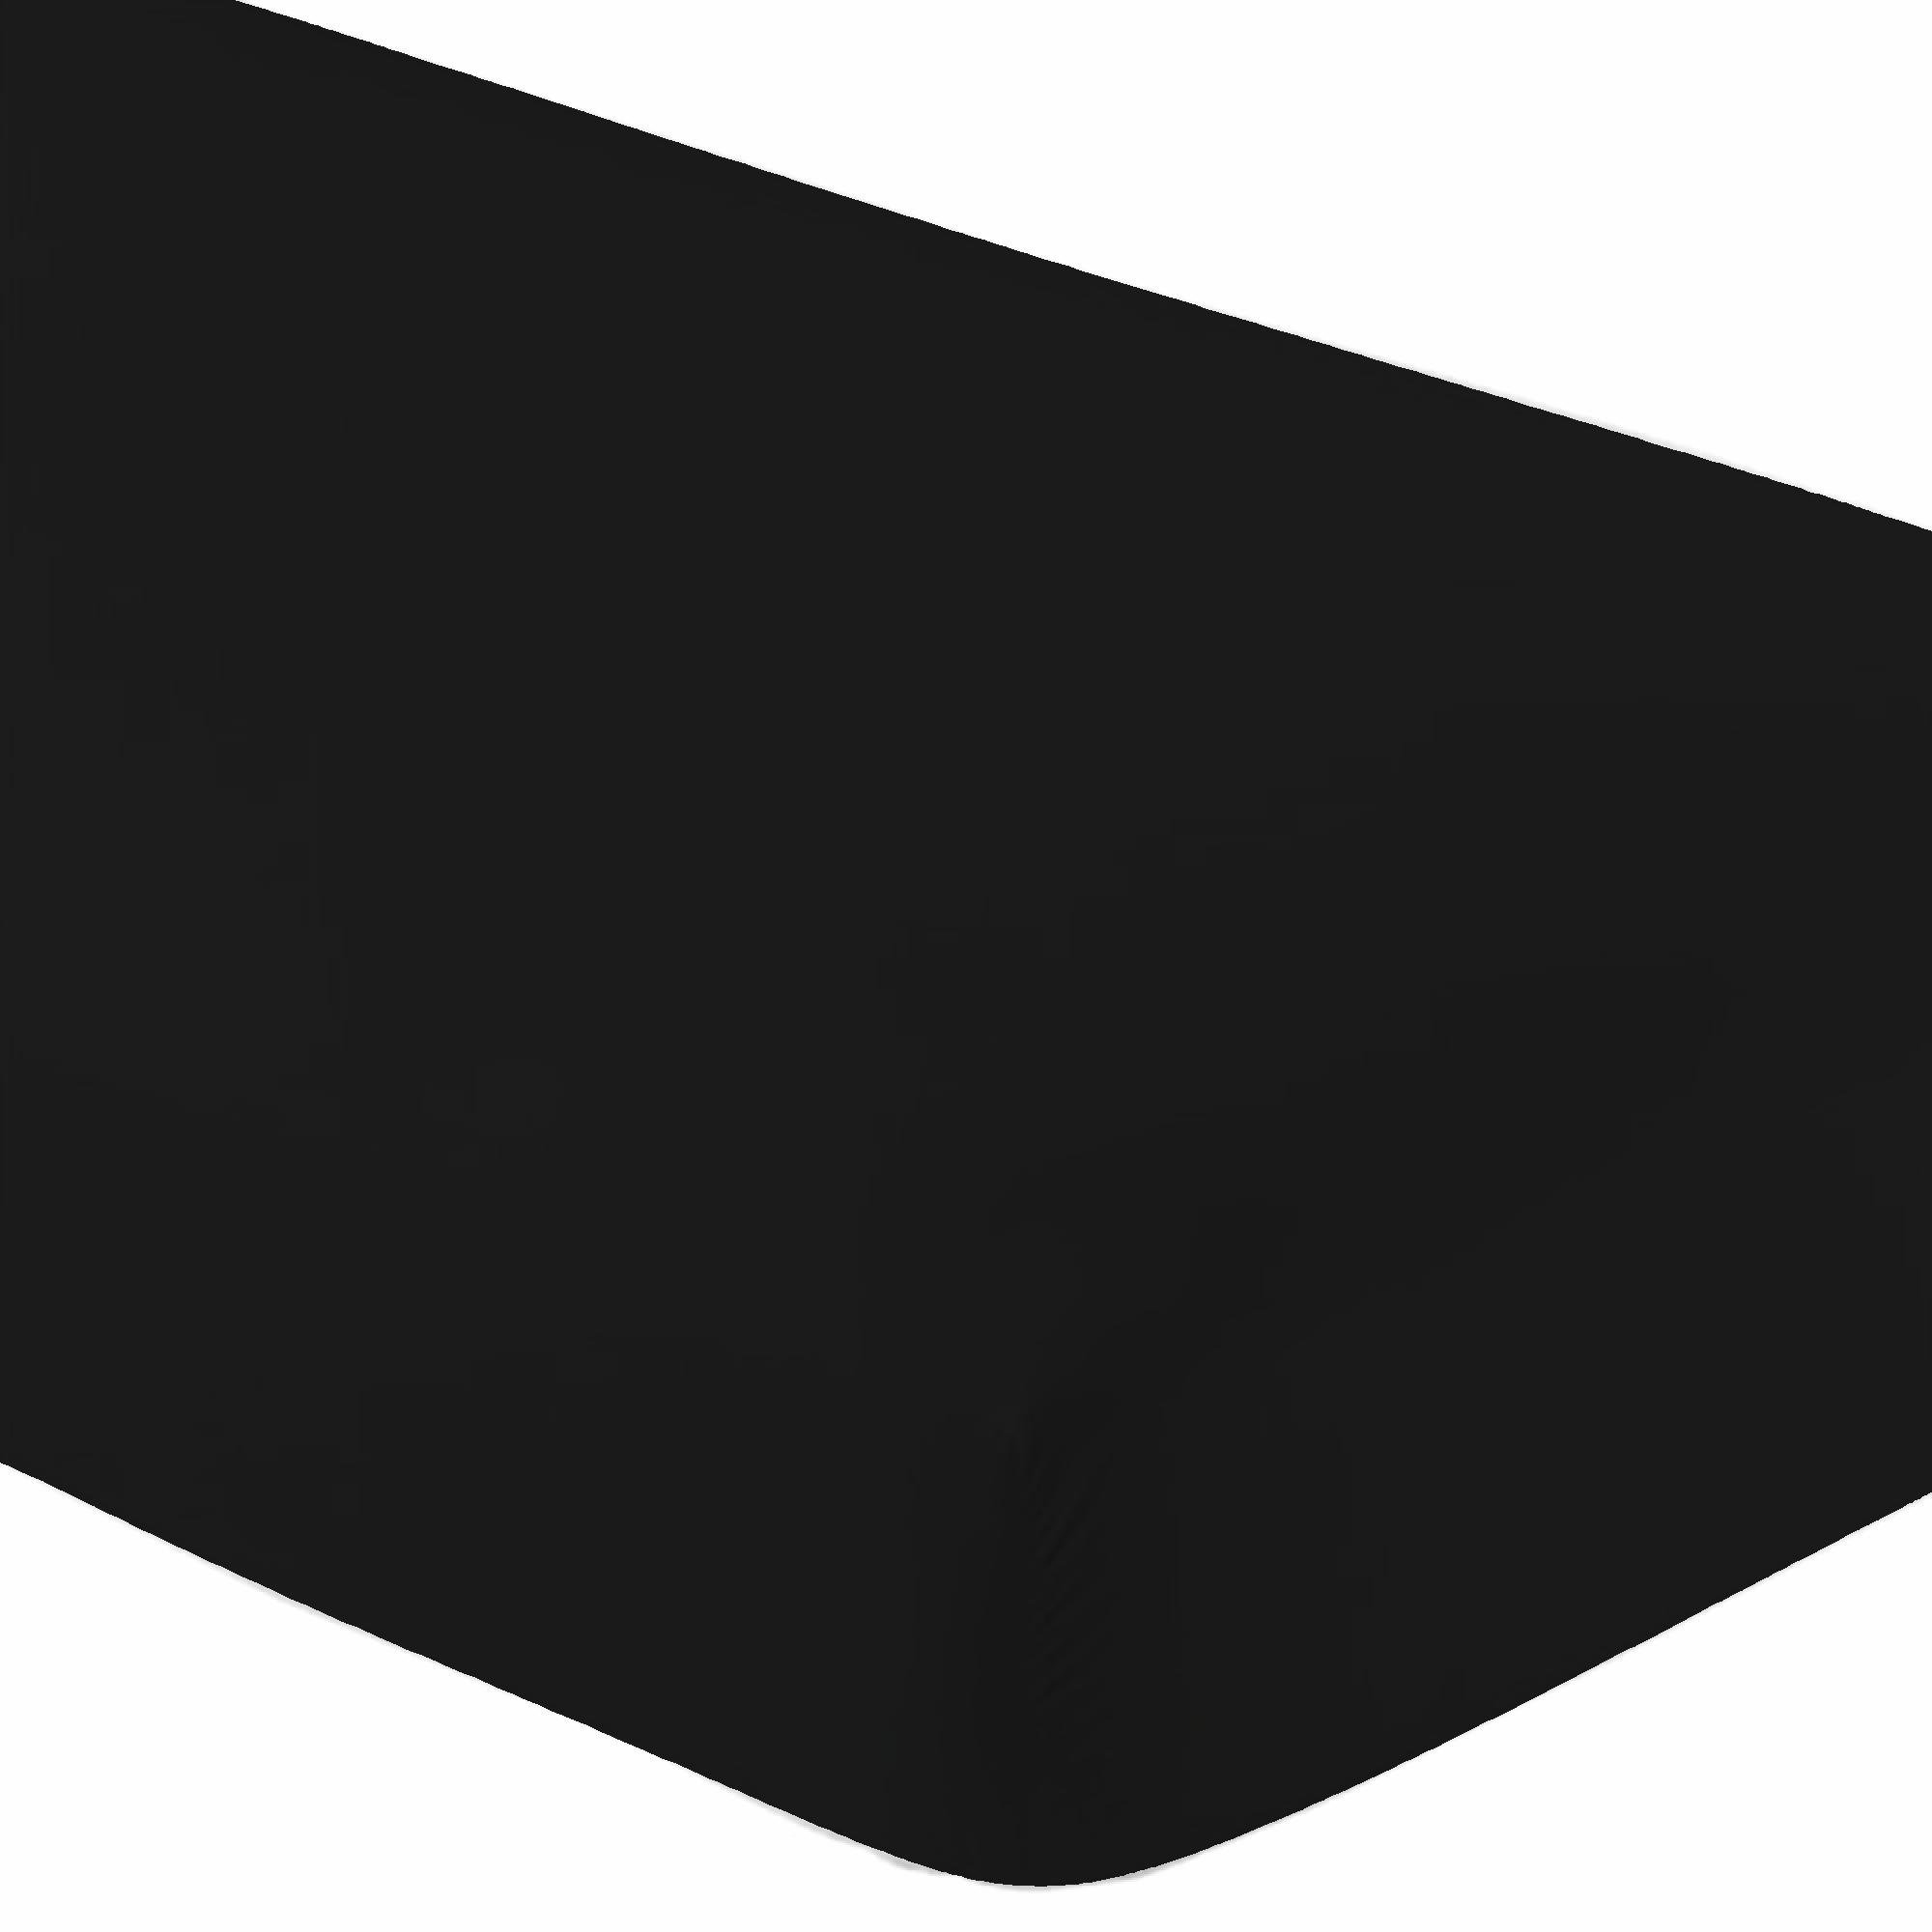 Crib Fitted Sheet Only - 200 Thread Count 100% Cotton - Soft & Comfy -Fit for Standard Crib Mattress (Black)